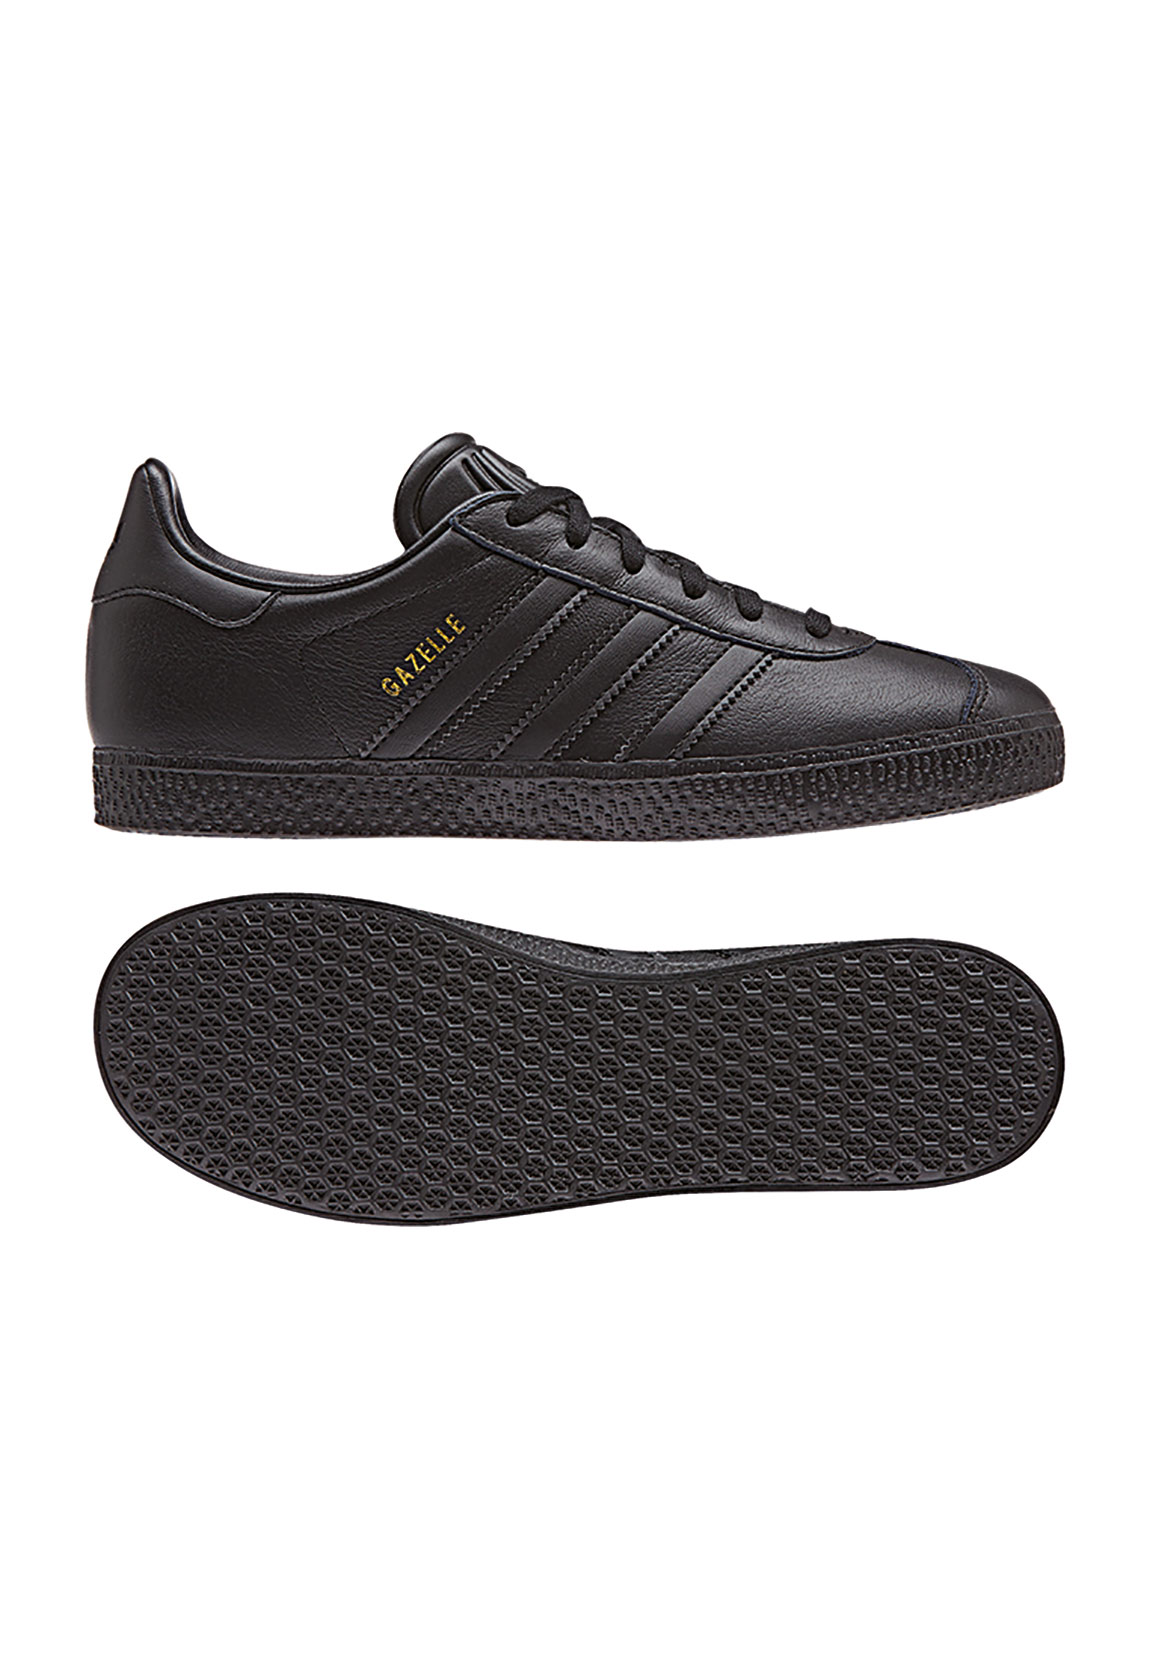 a2a1d0bbde4e85 Adidas Originals Sneaker Women s Gazelle BY9146 Black